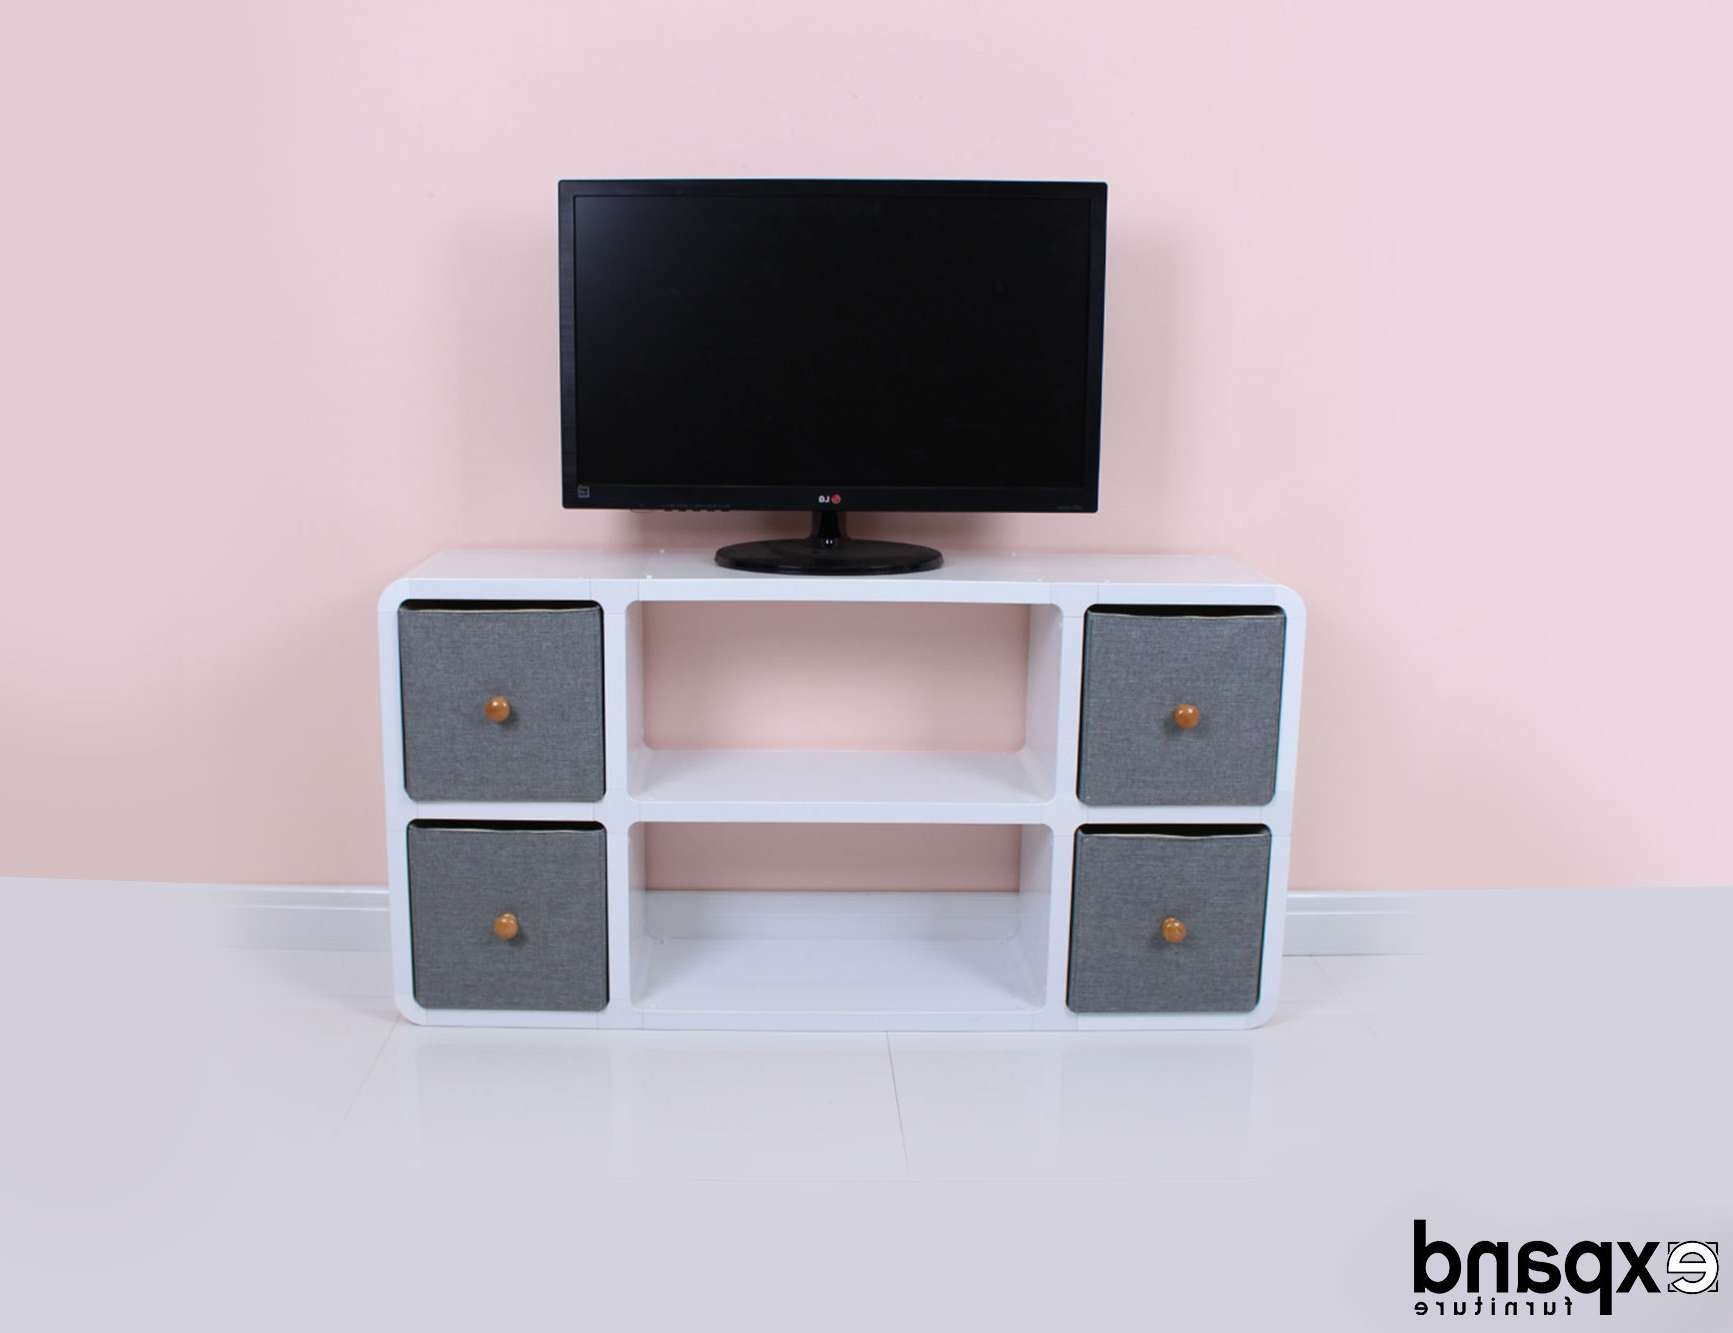 Luxury Tall Thin Tv Stand 23 For Simple Home Decoration Ideas With Intended For Tall Skinny Tv Stands (View 7 of 15)